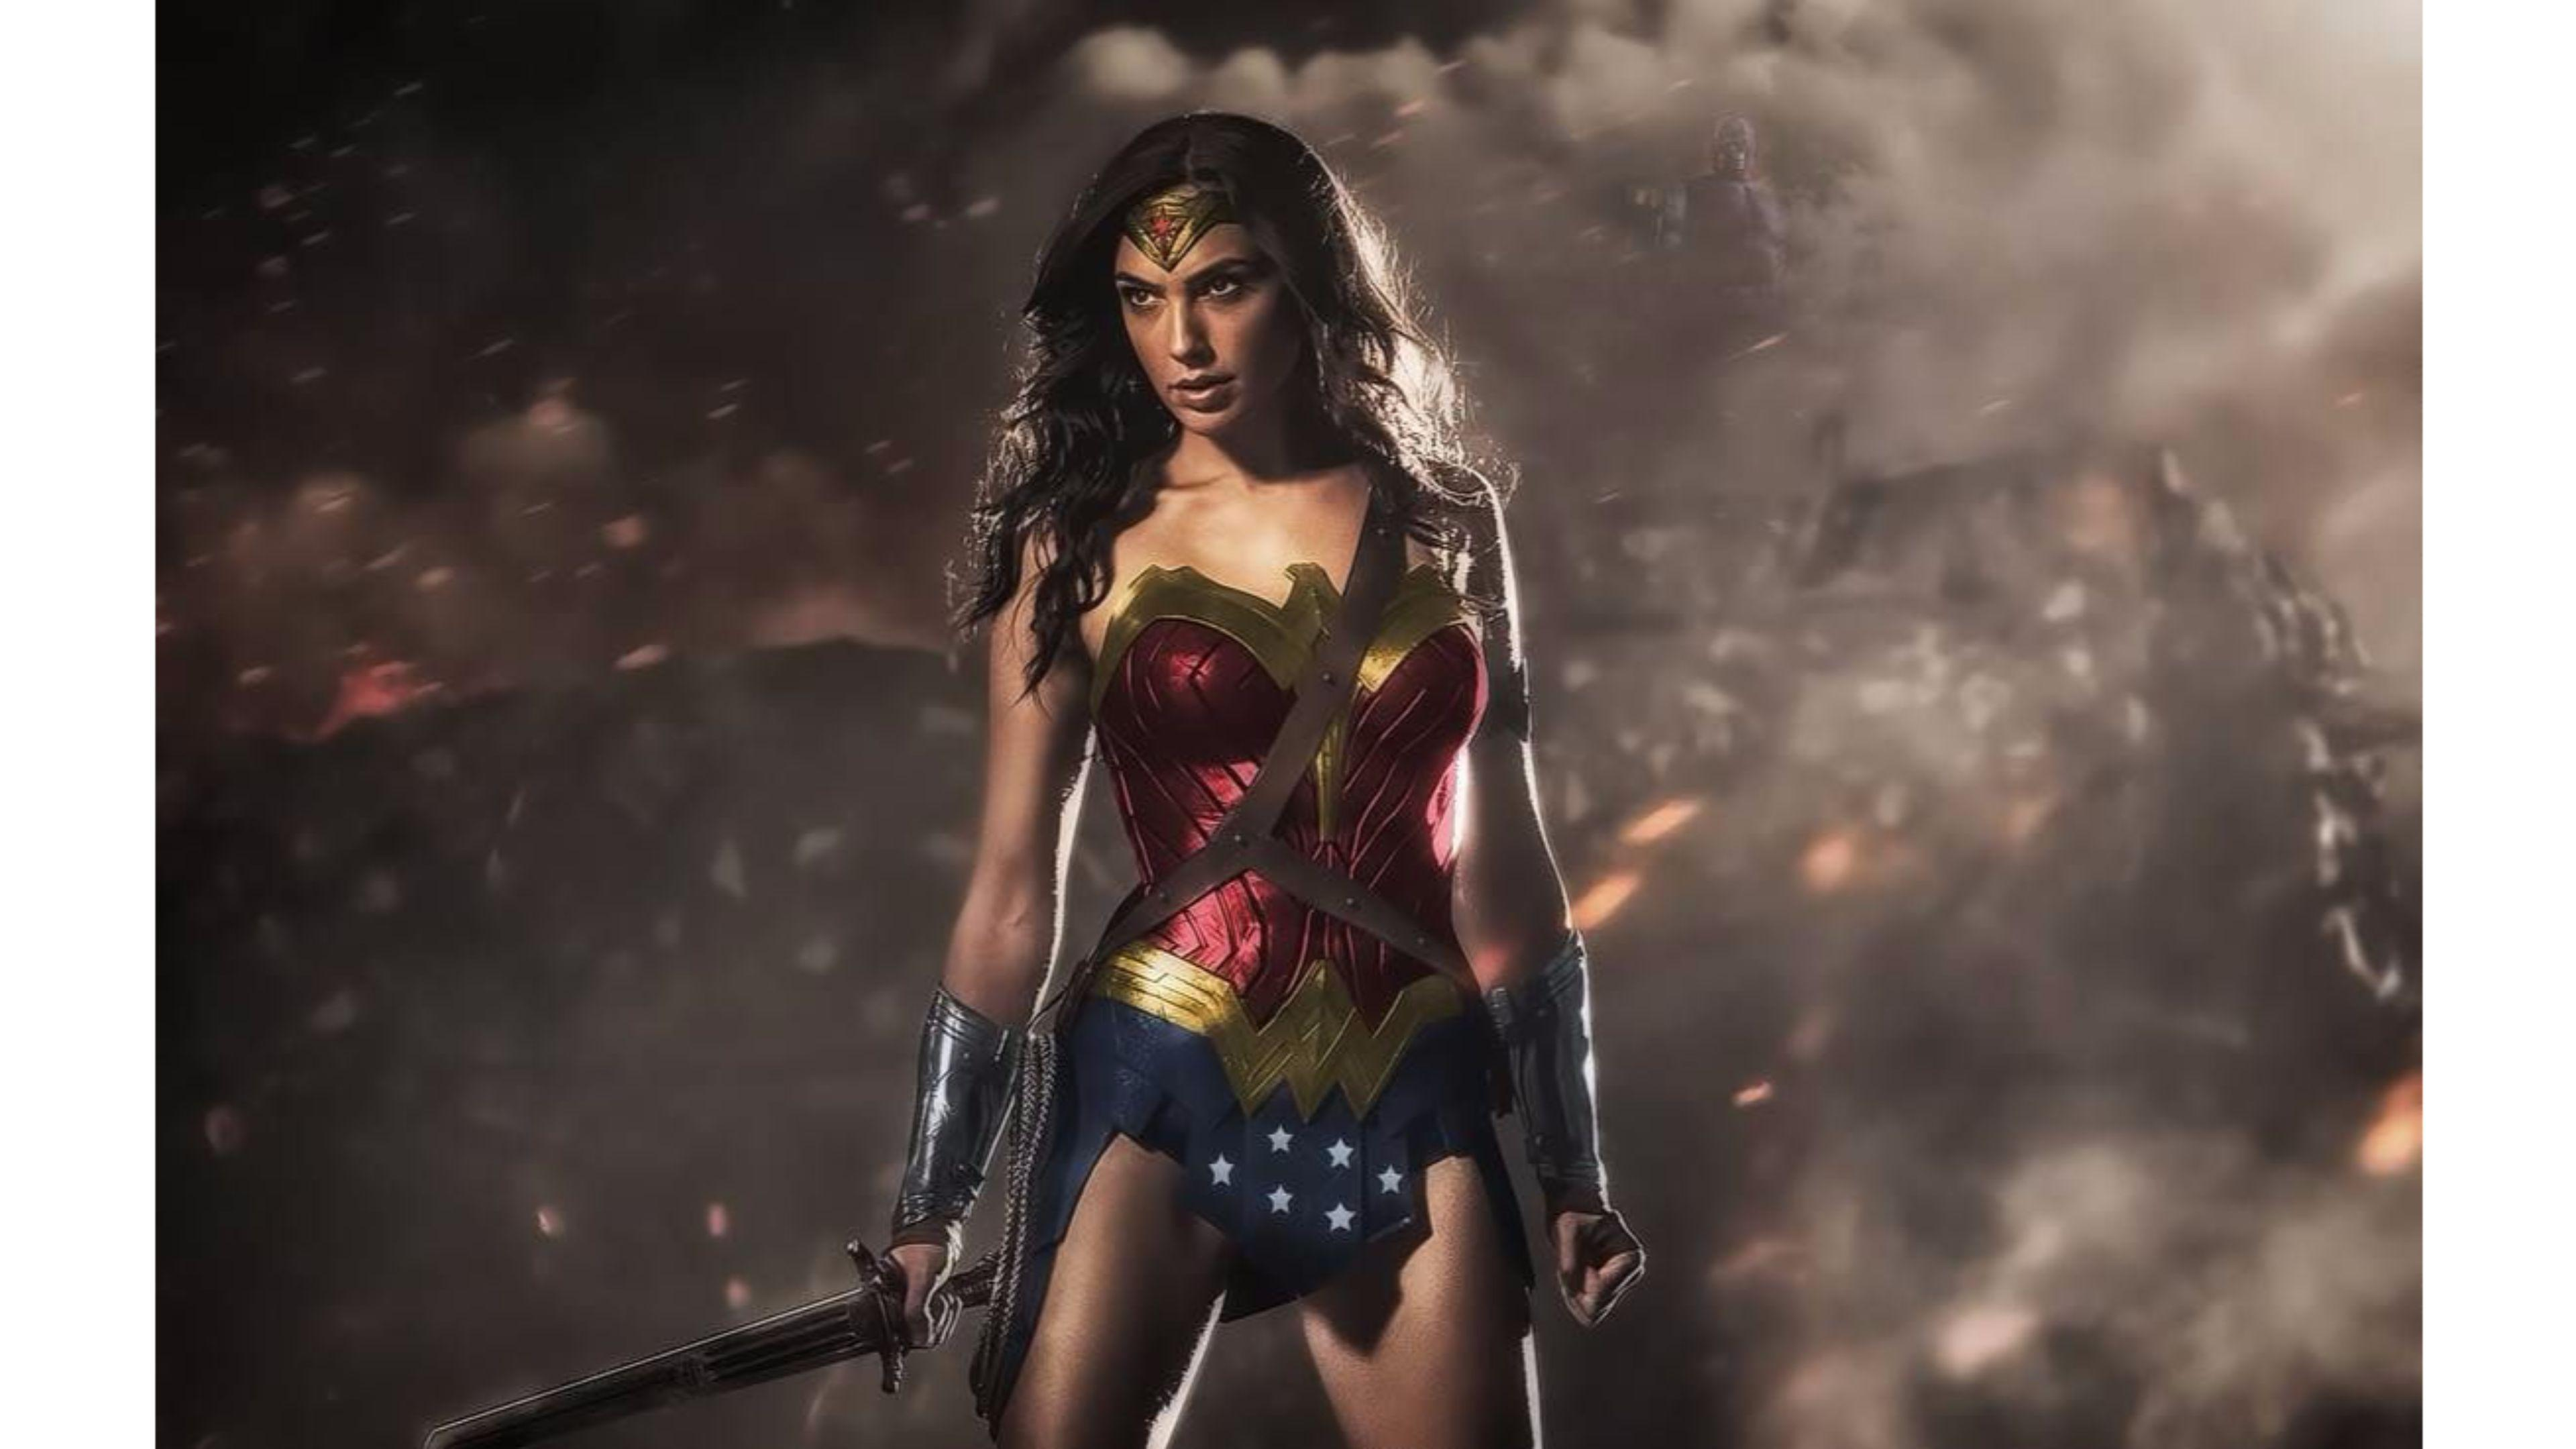 Wonder Woman Wallpaper Full Hd ~ Sdeerwallpaper